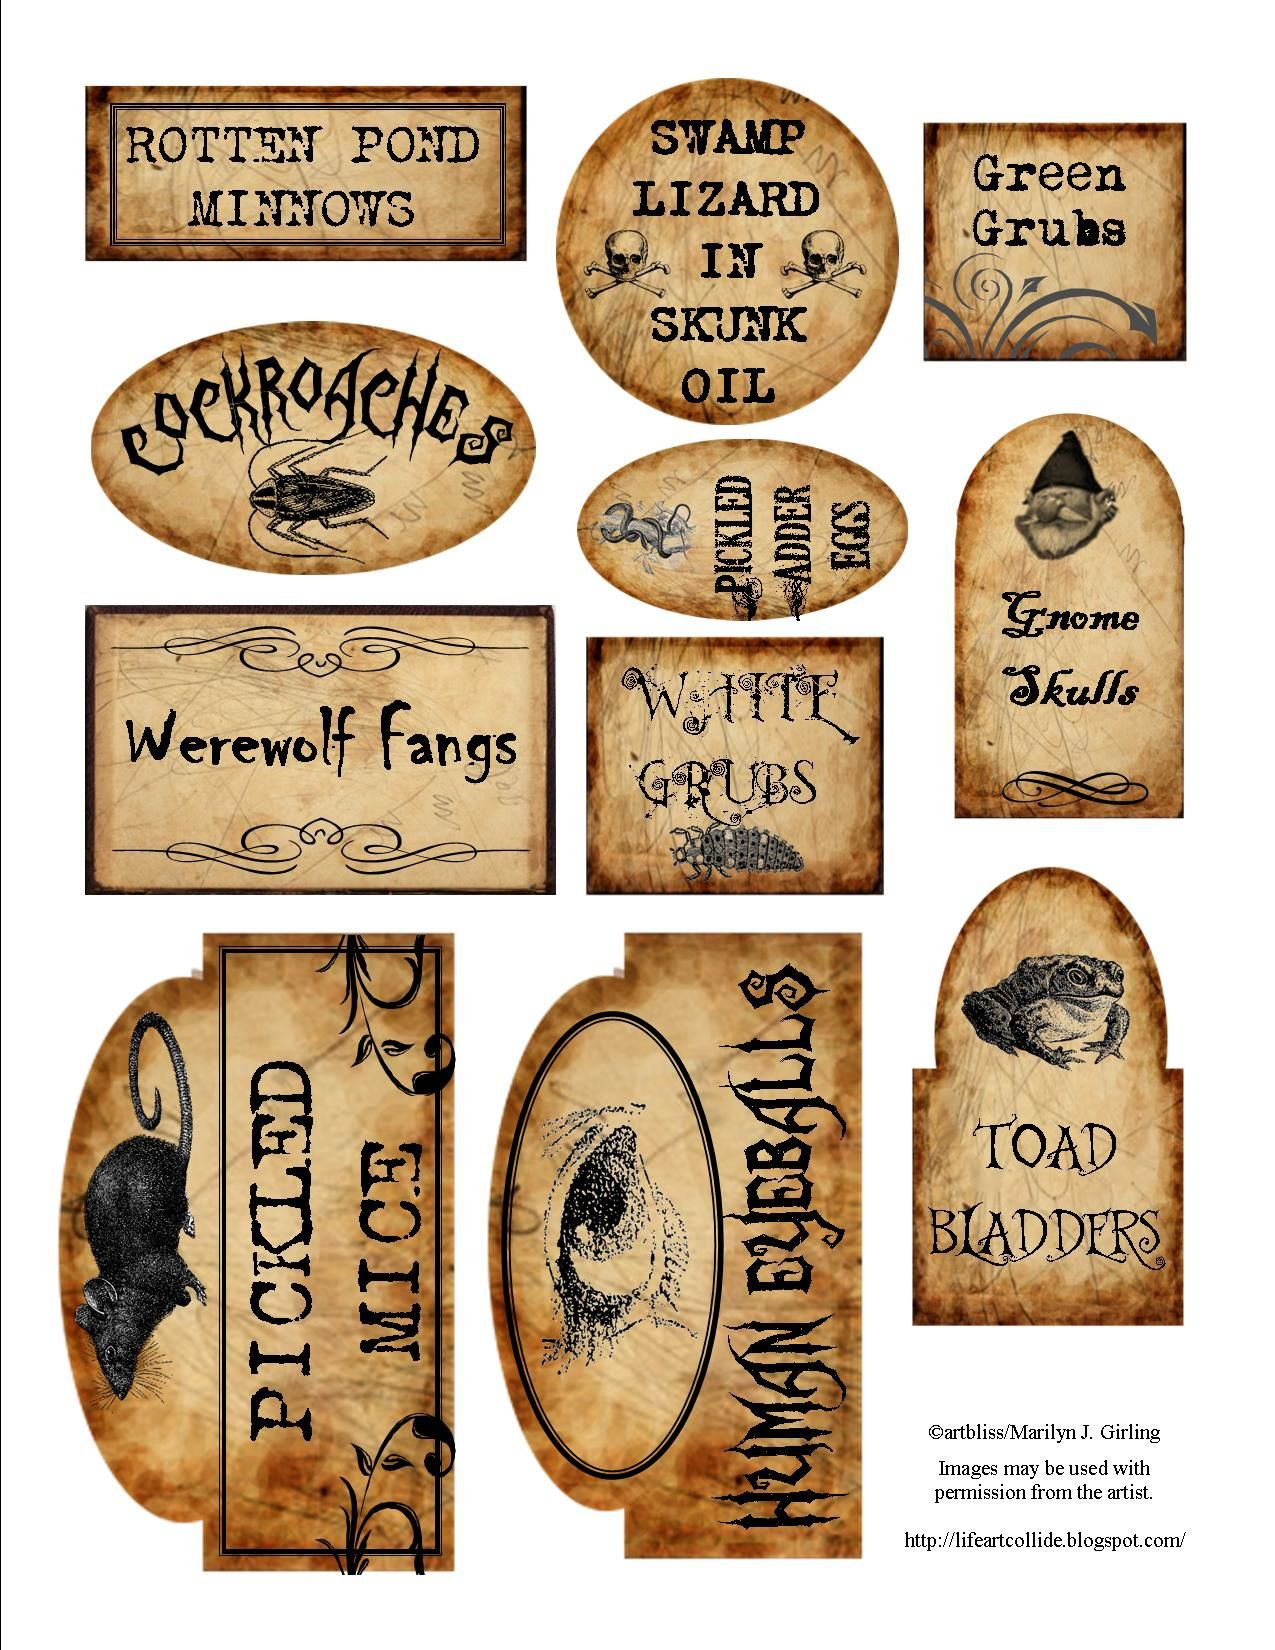 Apothecary Jar Labels For Download.jpg - Google Drive https://docs ...